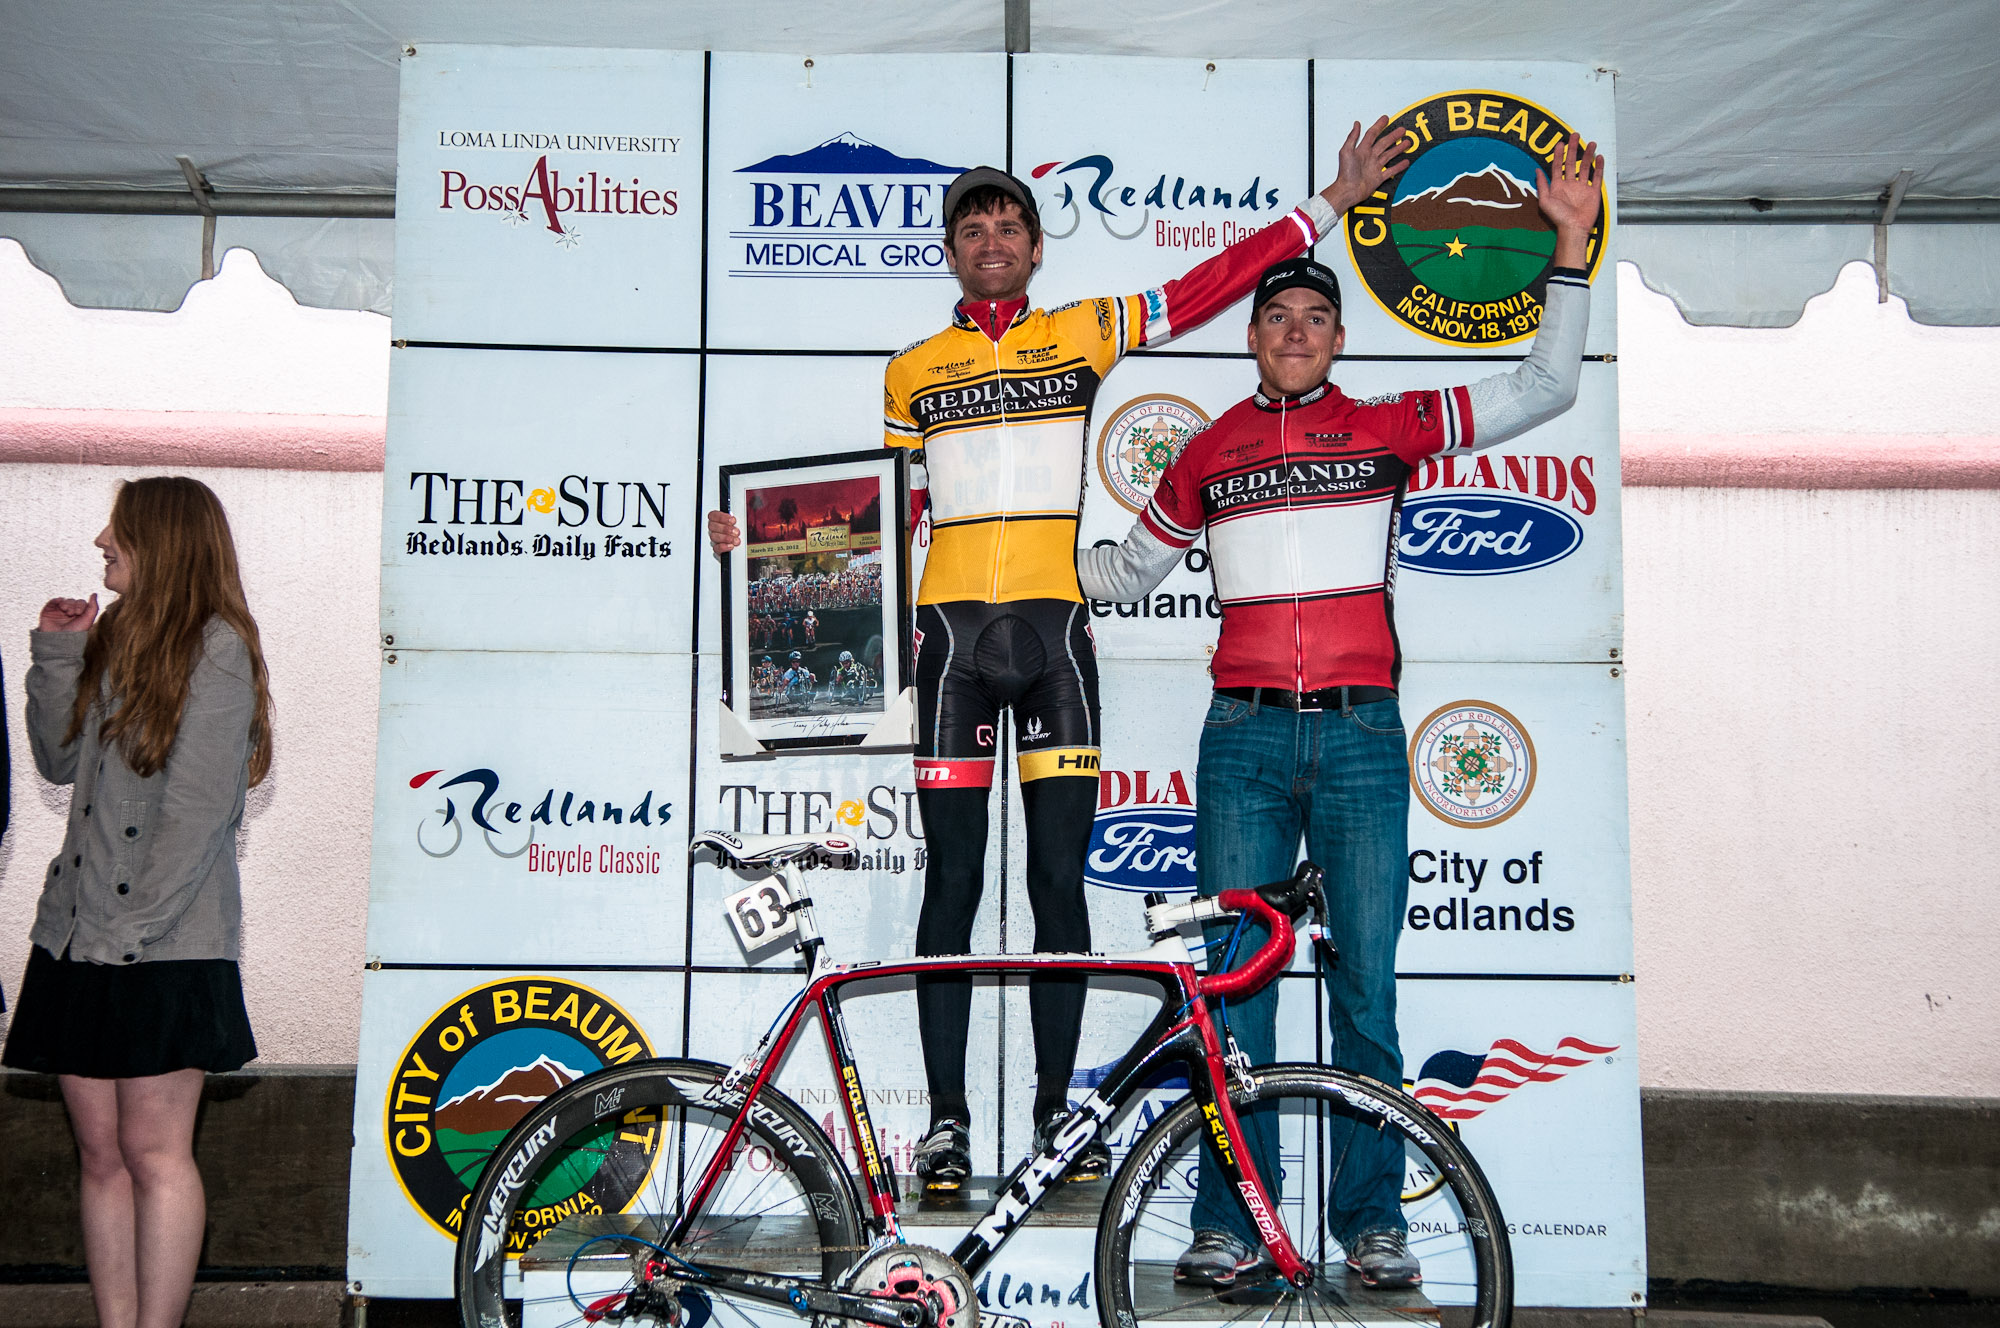 The Red Jersey: Taylor Shelden captures the overall King of the Mountain (KOM) title at the Redlands Bicycle Classic. Photo: Tommy Chandler/Competitive Cyclist.